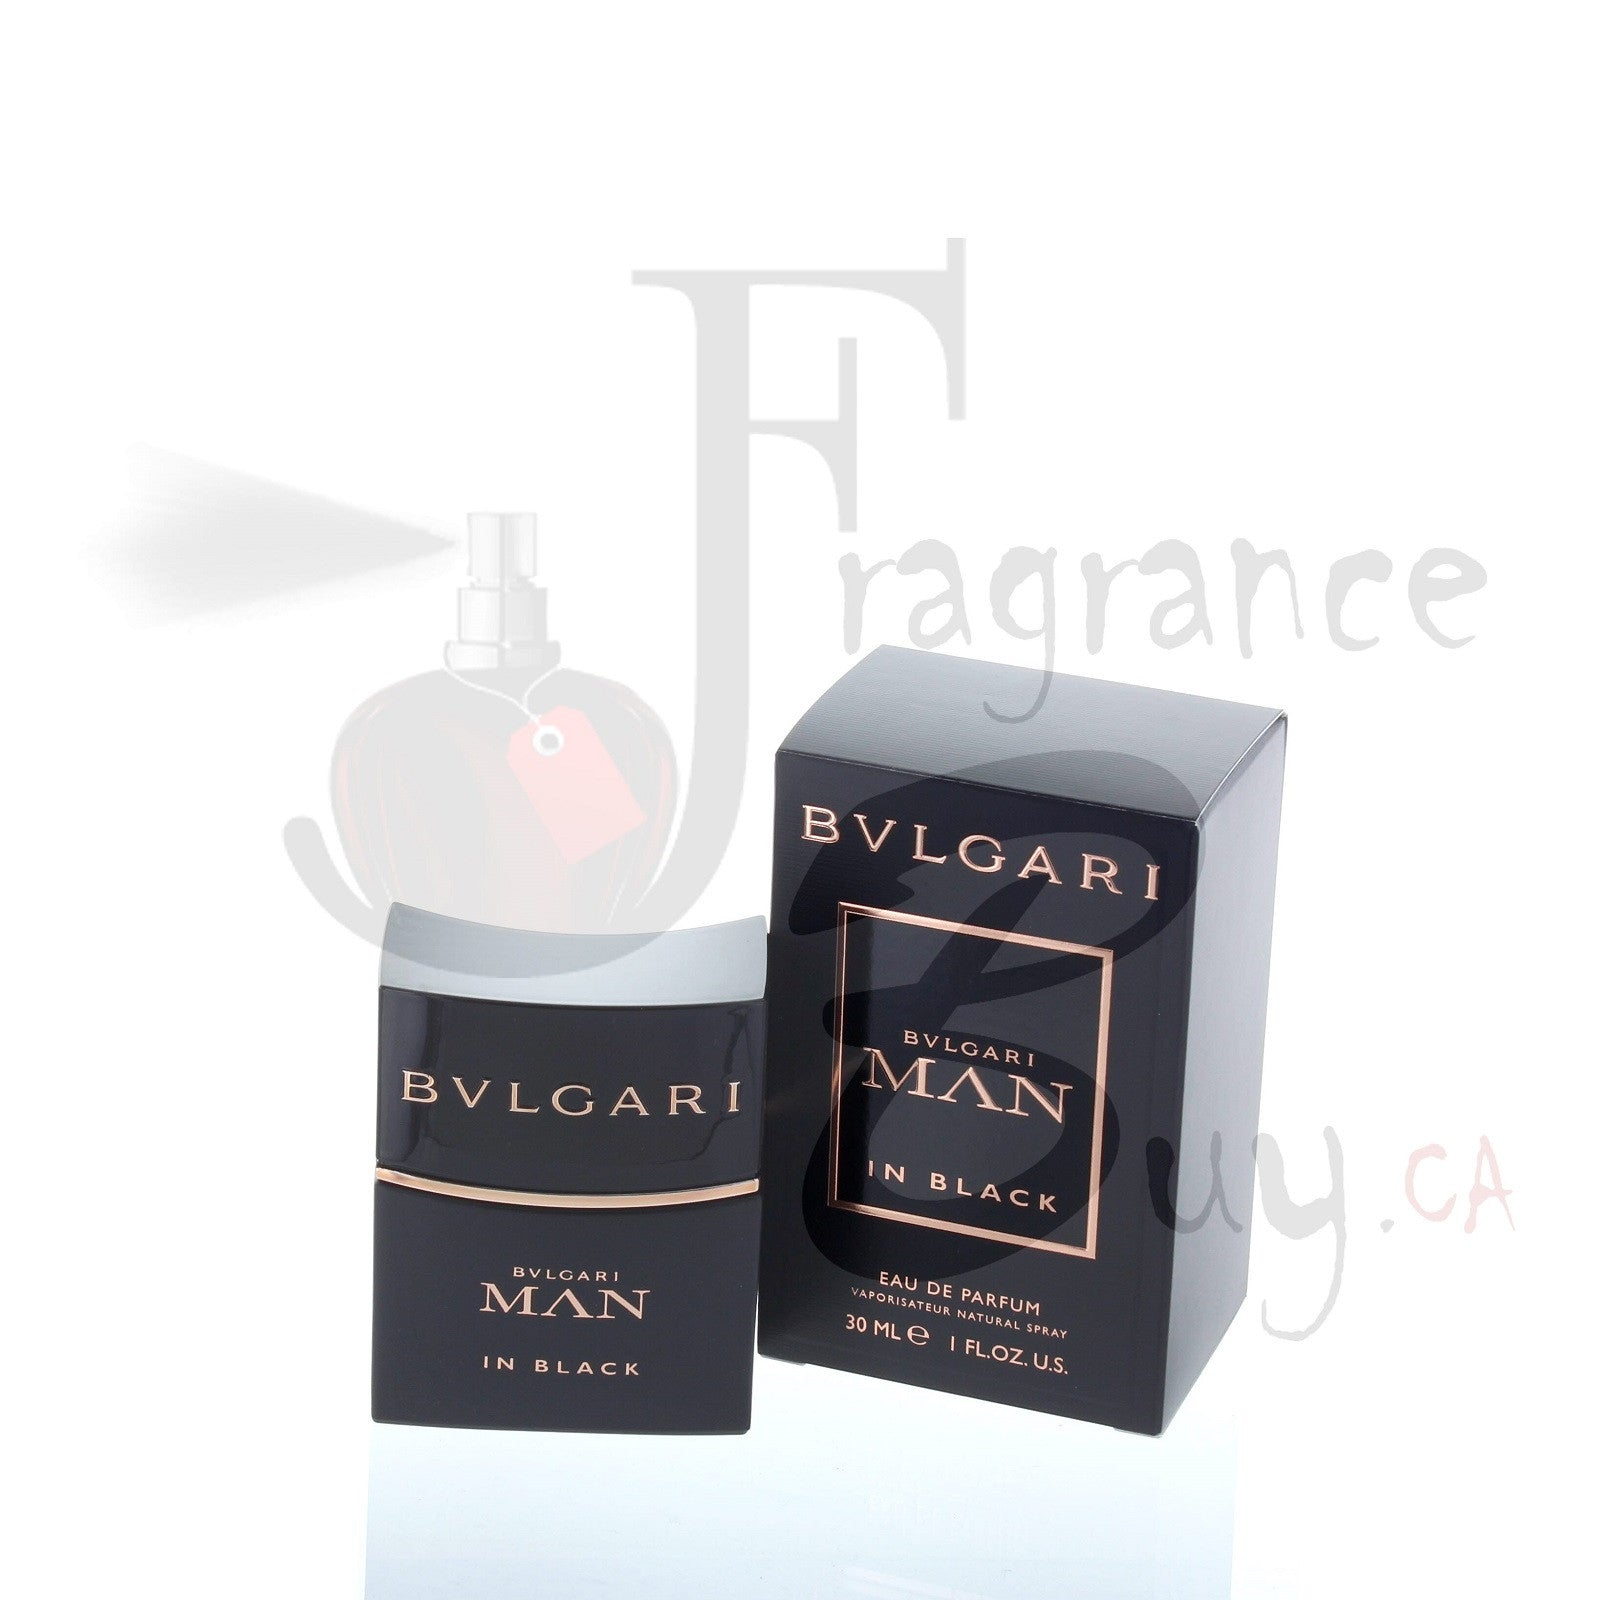 Bvlgari Man in Black For Man